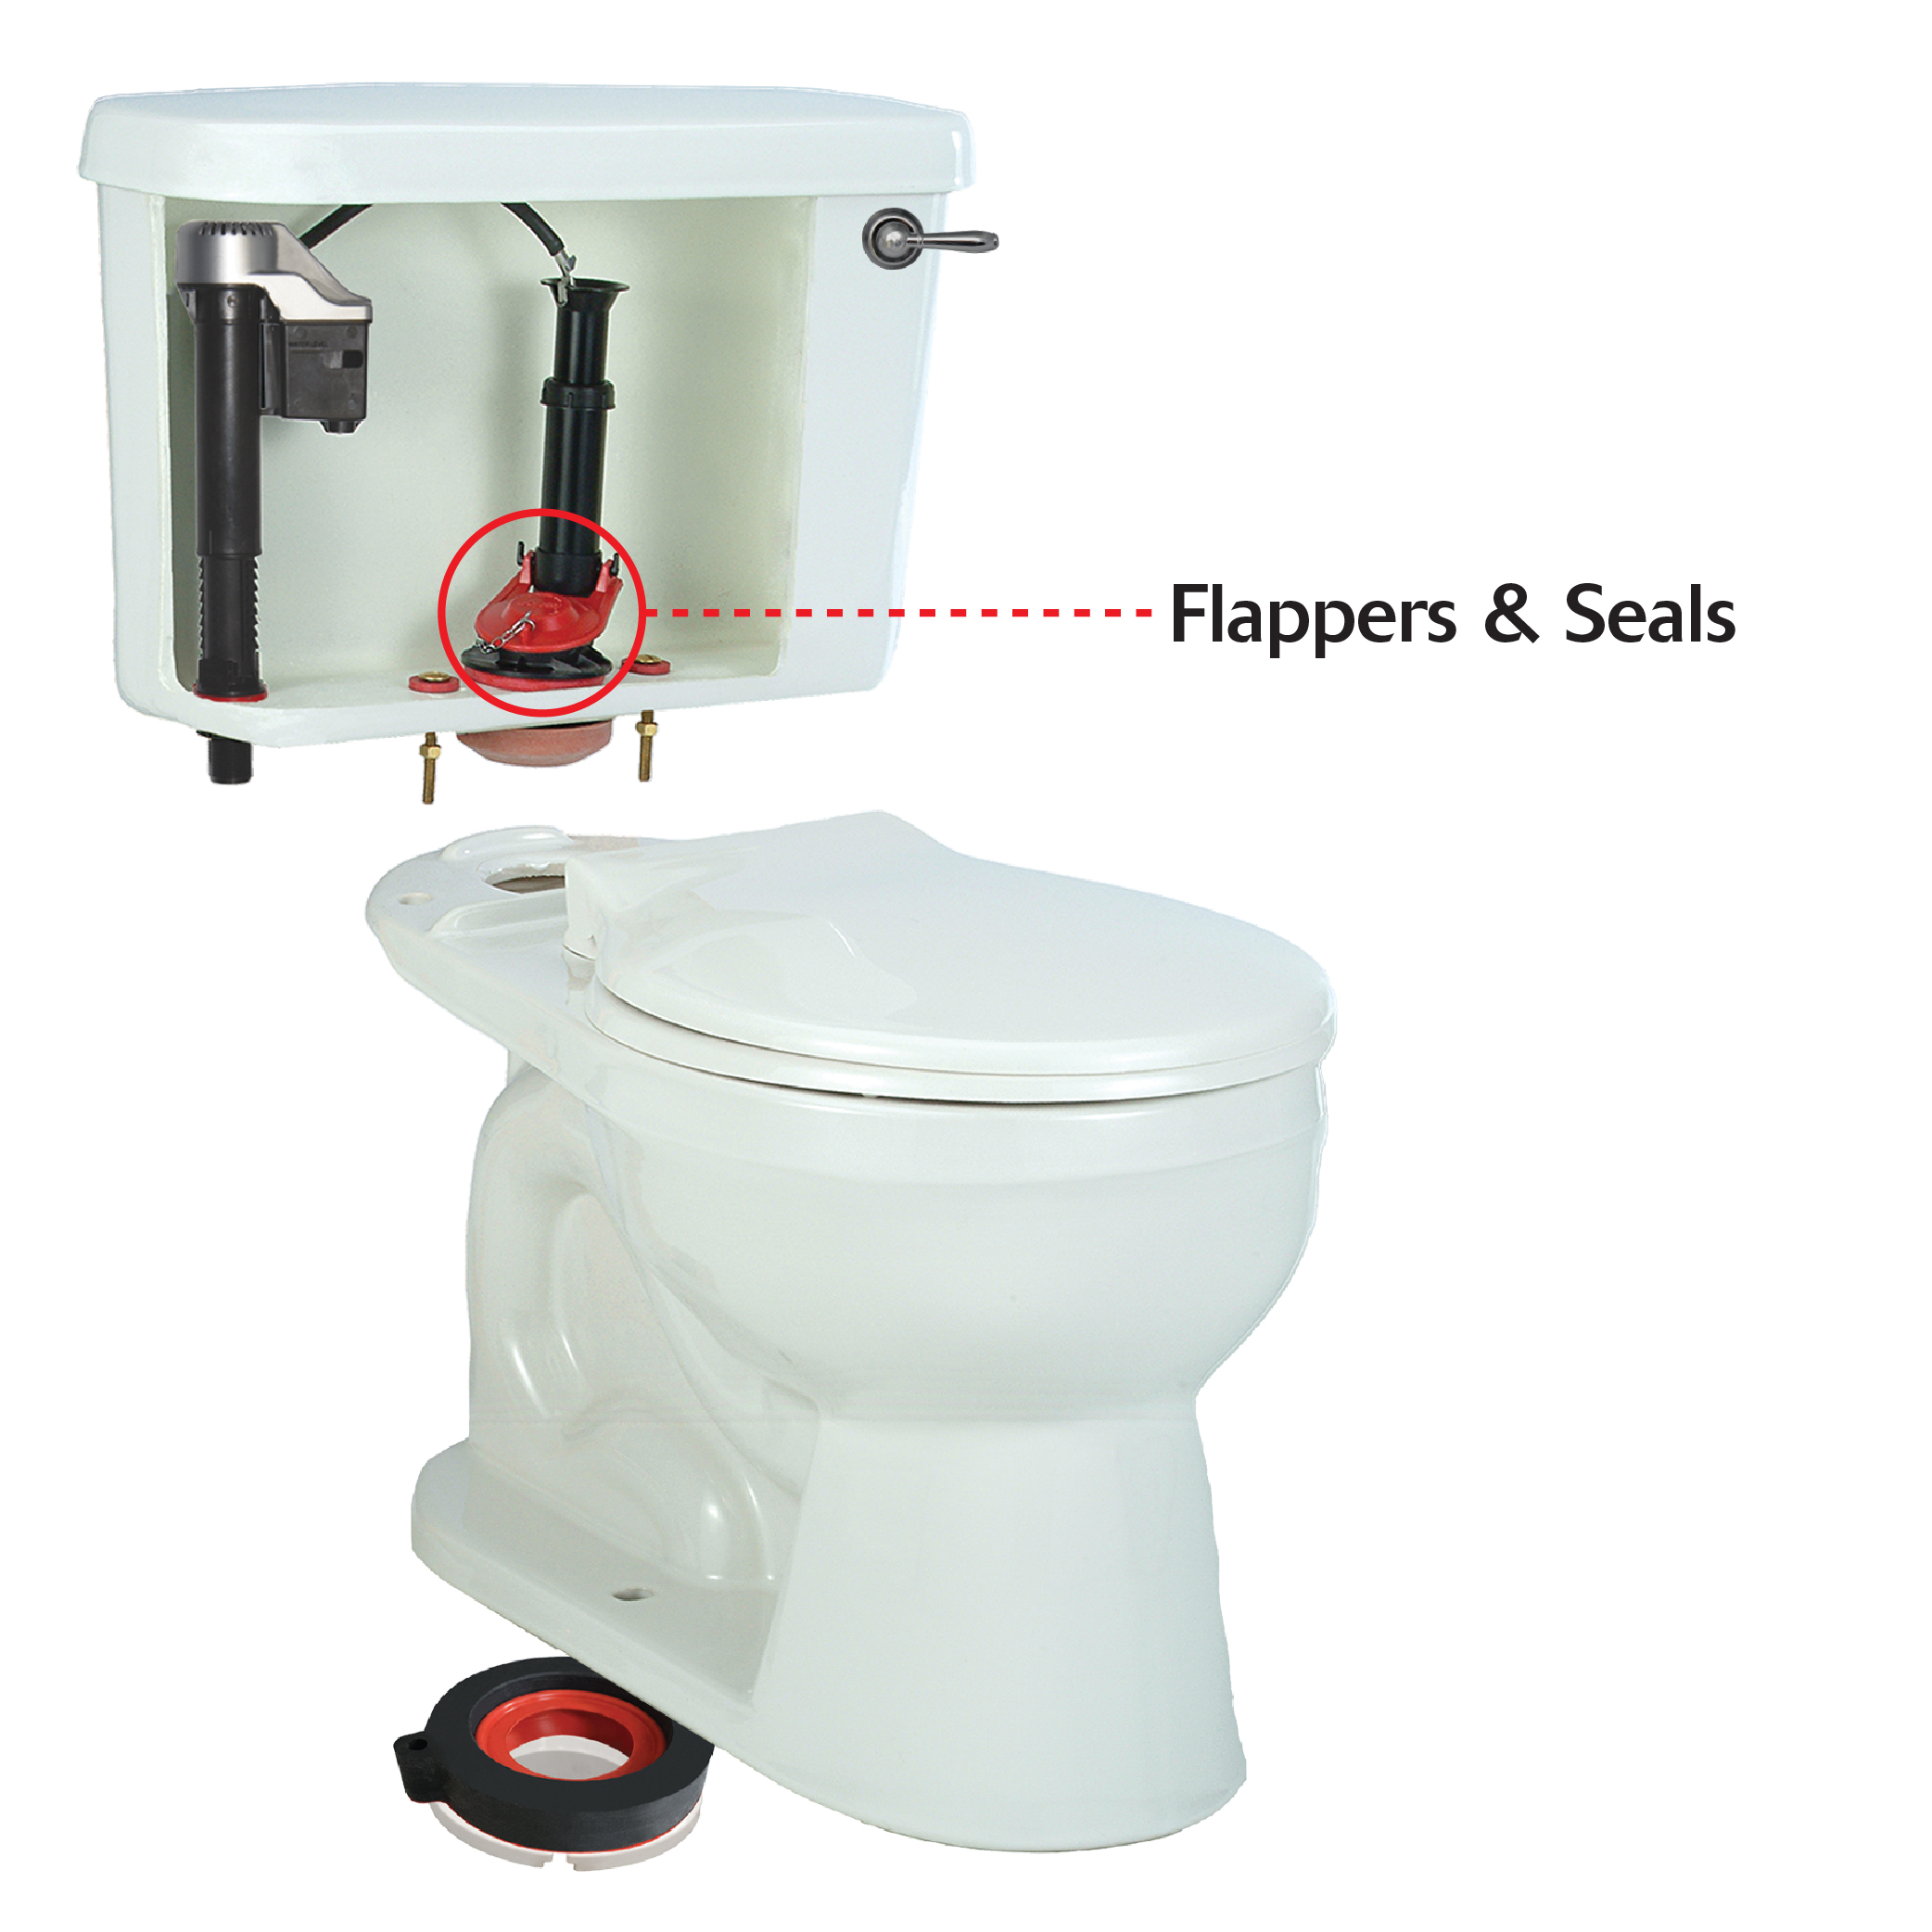 universal toilet flapper replacement. Toilet Flappers And Seals Flapper  Replacement Replacing Seal